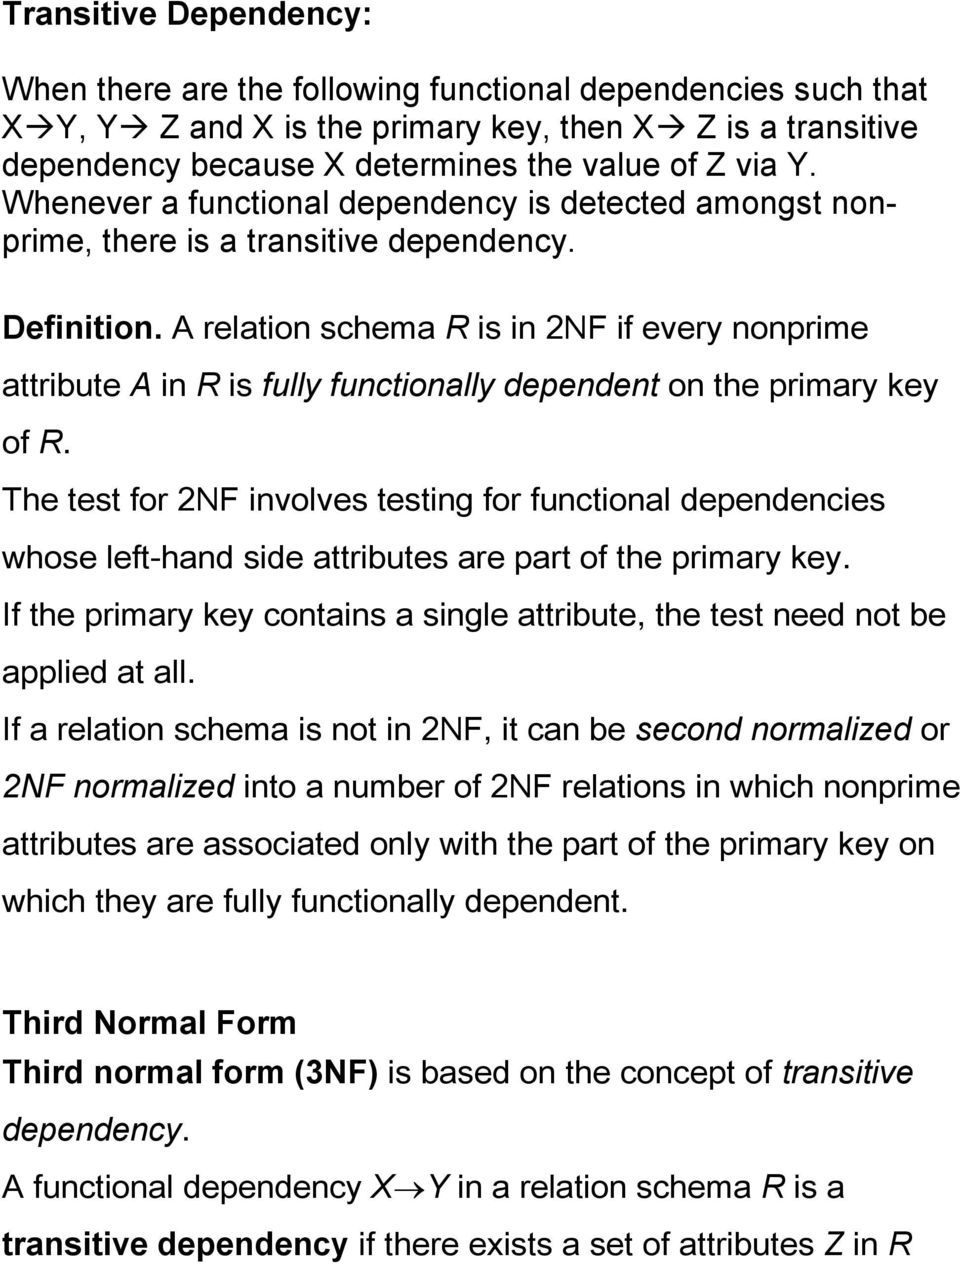 A relation schema R is in 2NF if every nonprime attribute A in R is fully functionally dependent on the primary key of R.